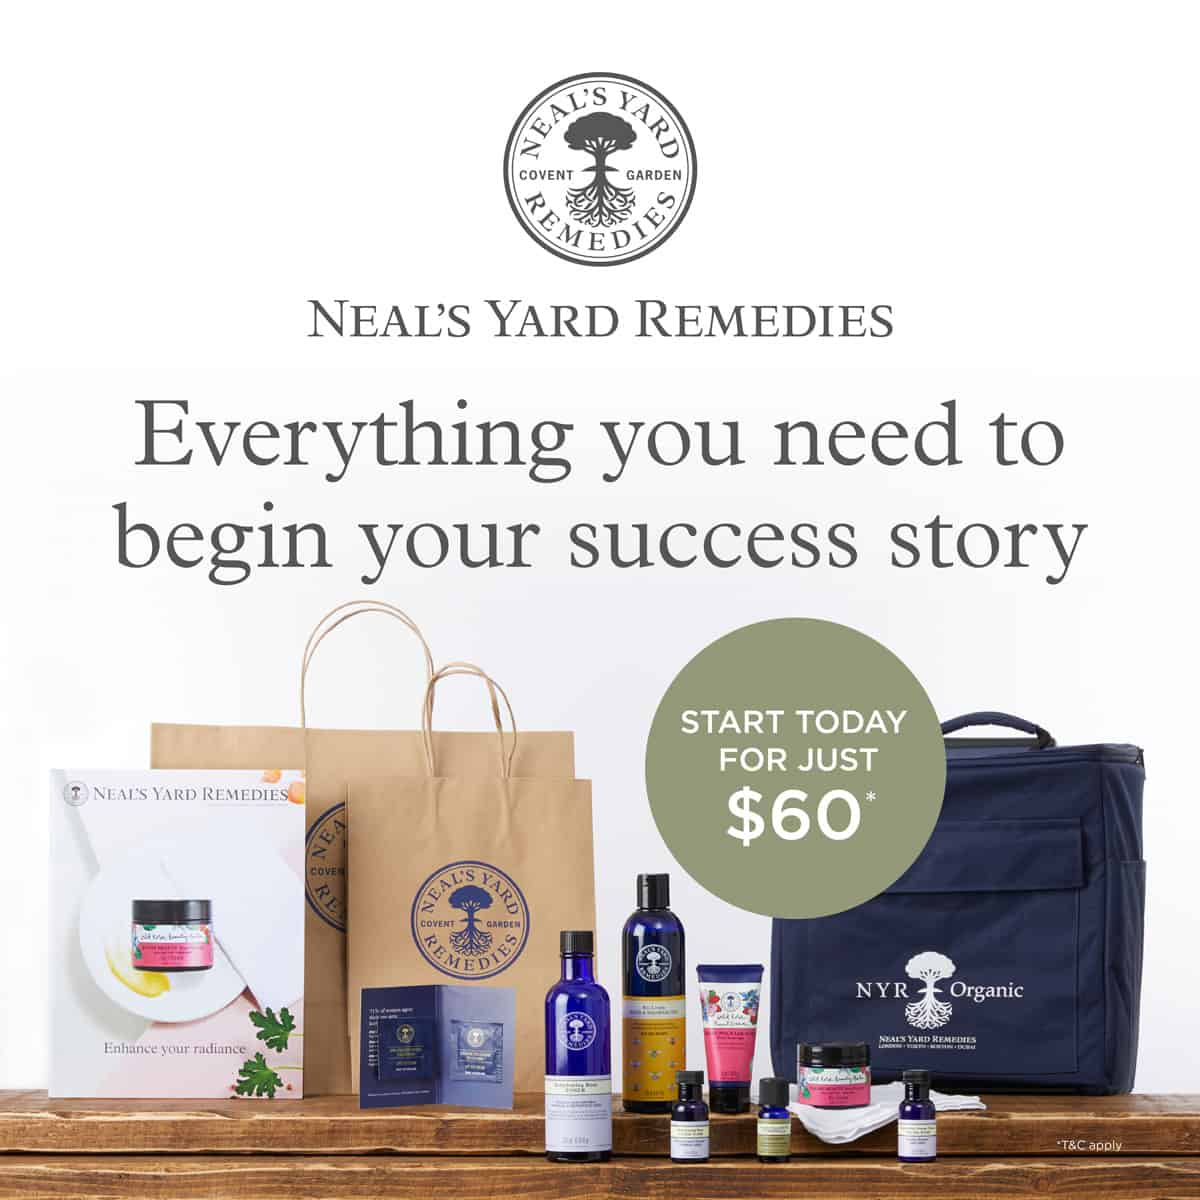 Join NYR Organic in May. $60 kit to start an organic skincare business.